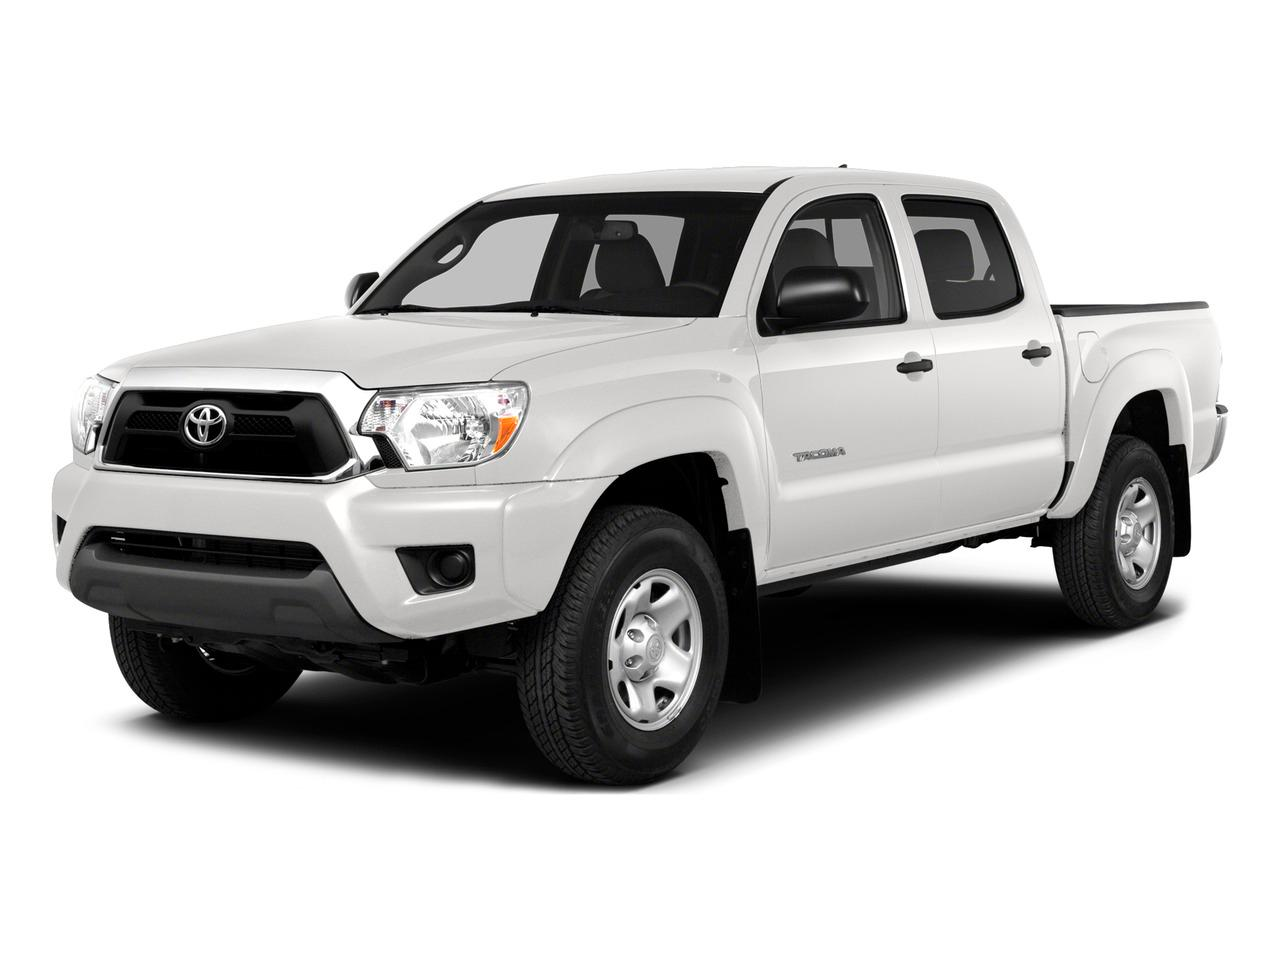 2015 Toyota Tacoma Vehicle Photo in Owensboro, KY 42303